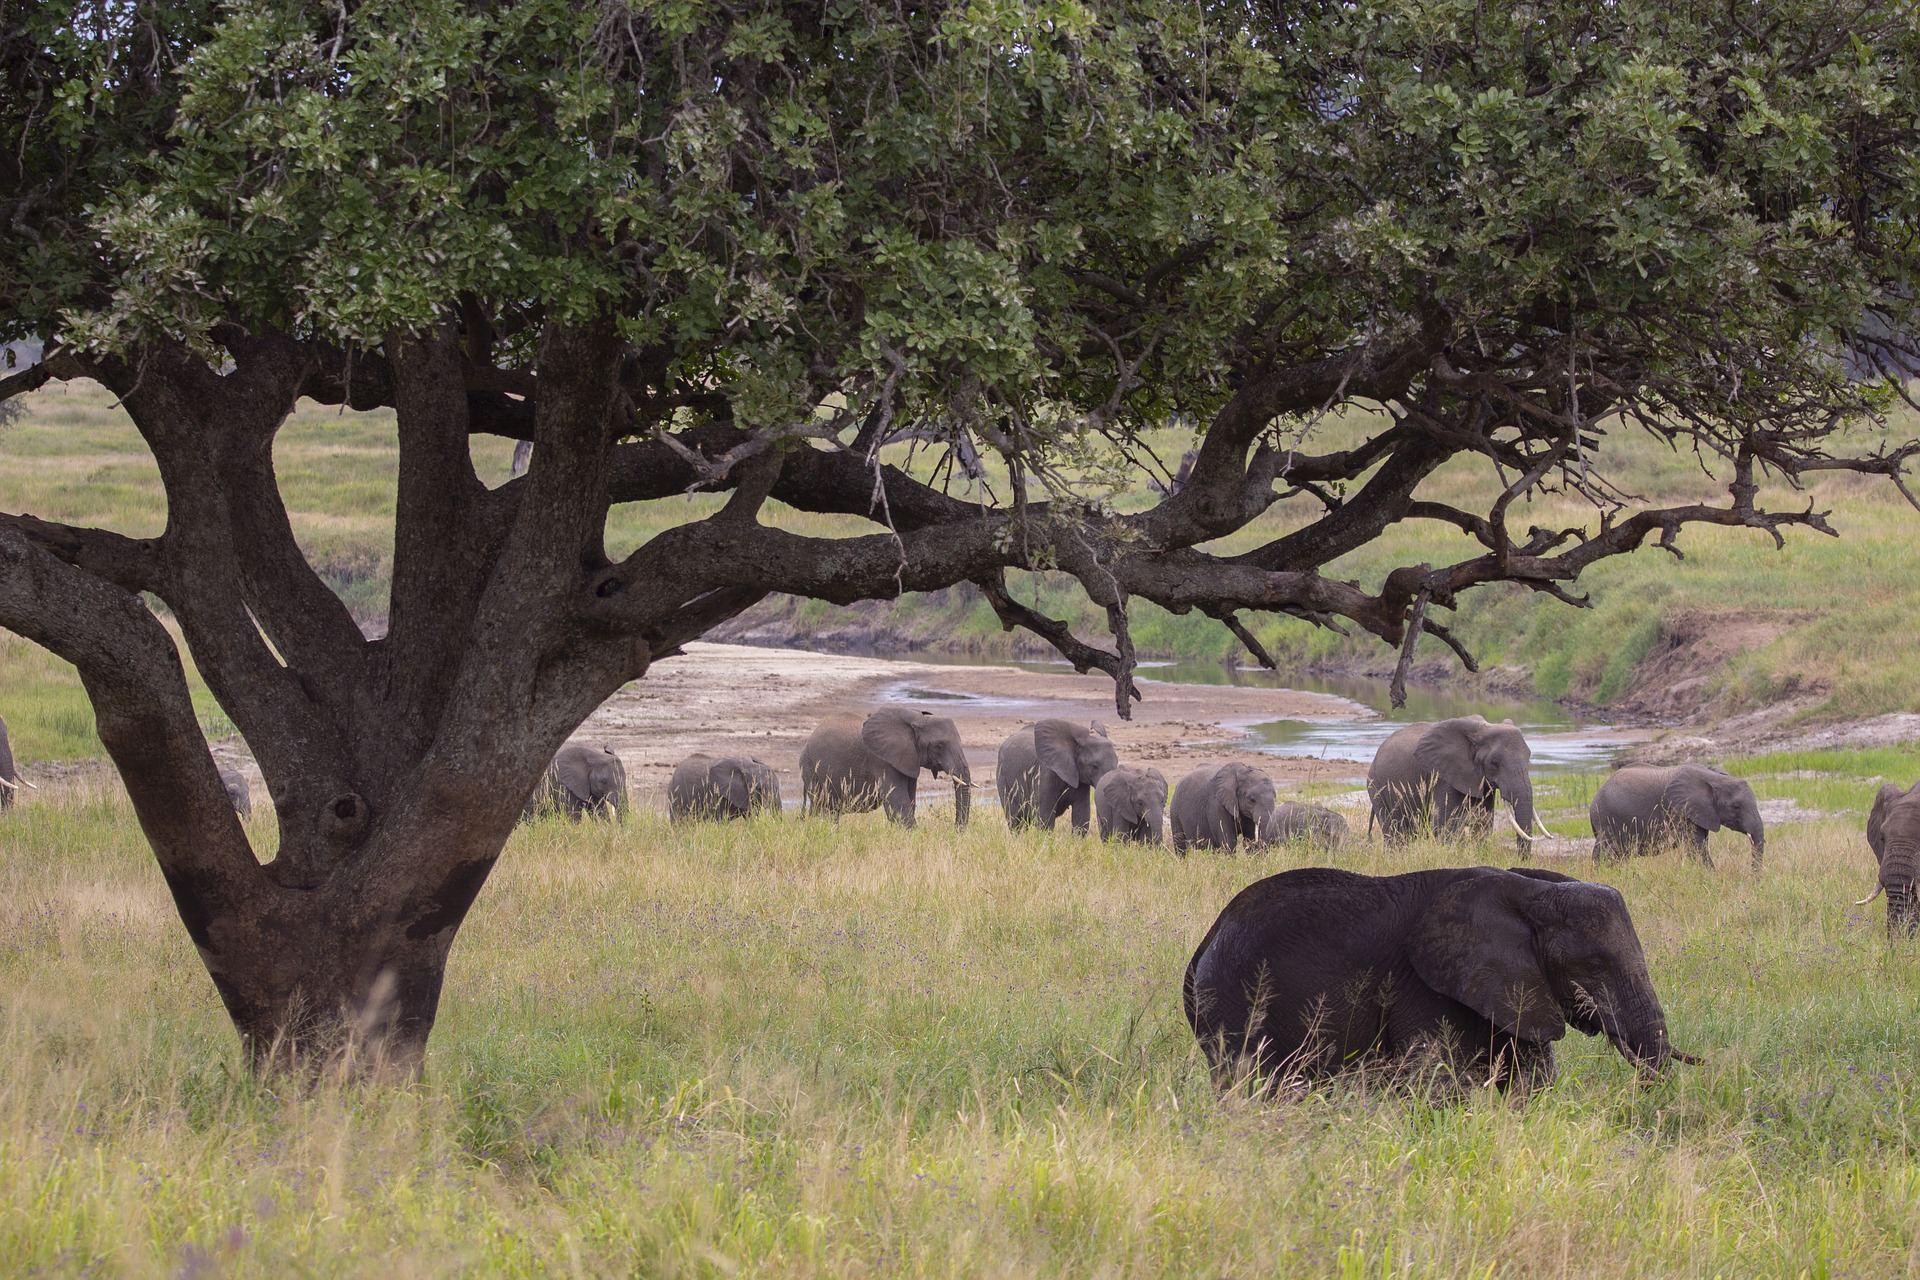 Bees tell raucous elephants to buzz off